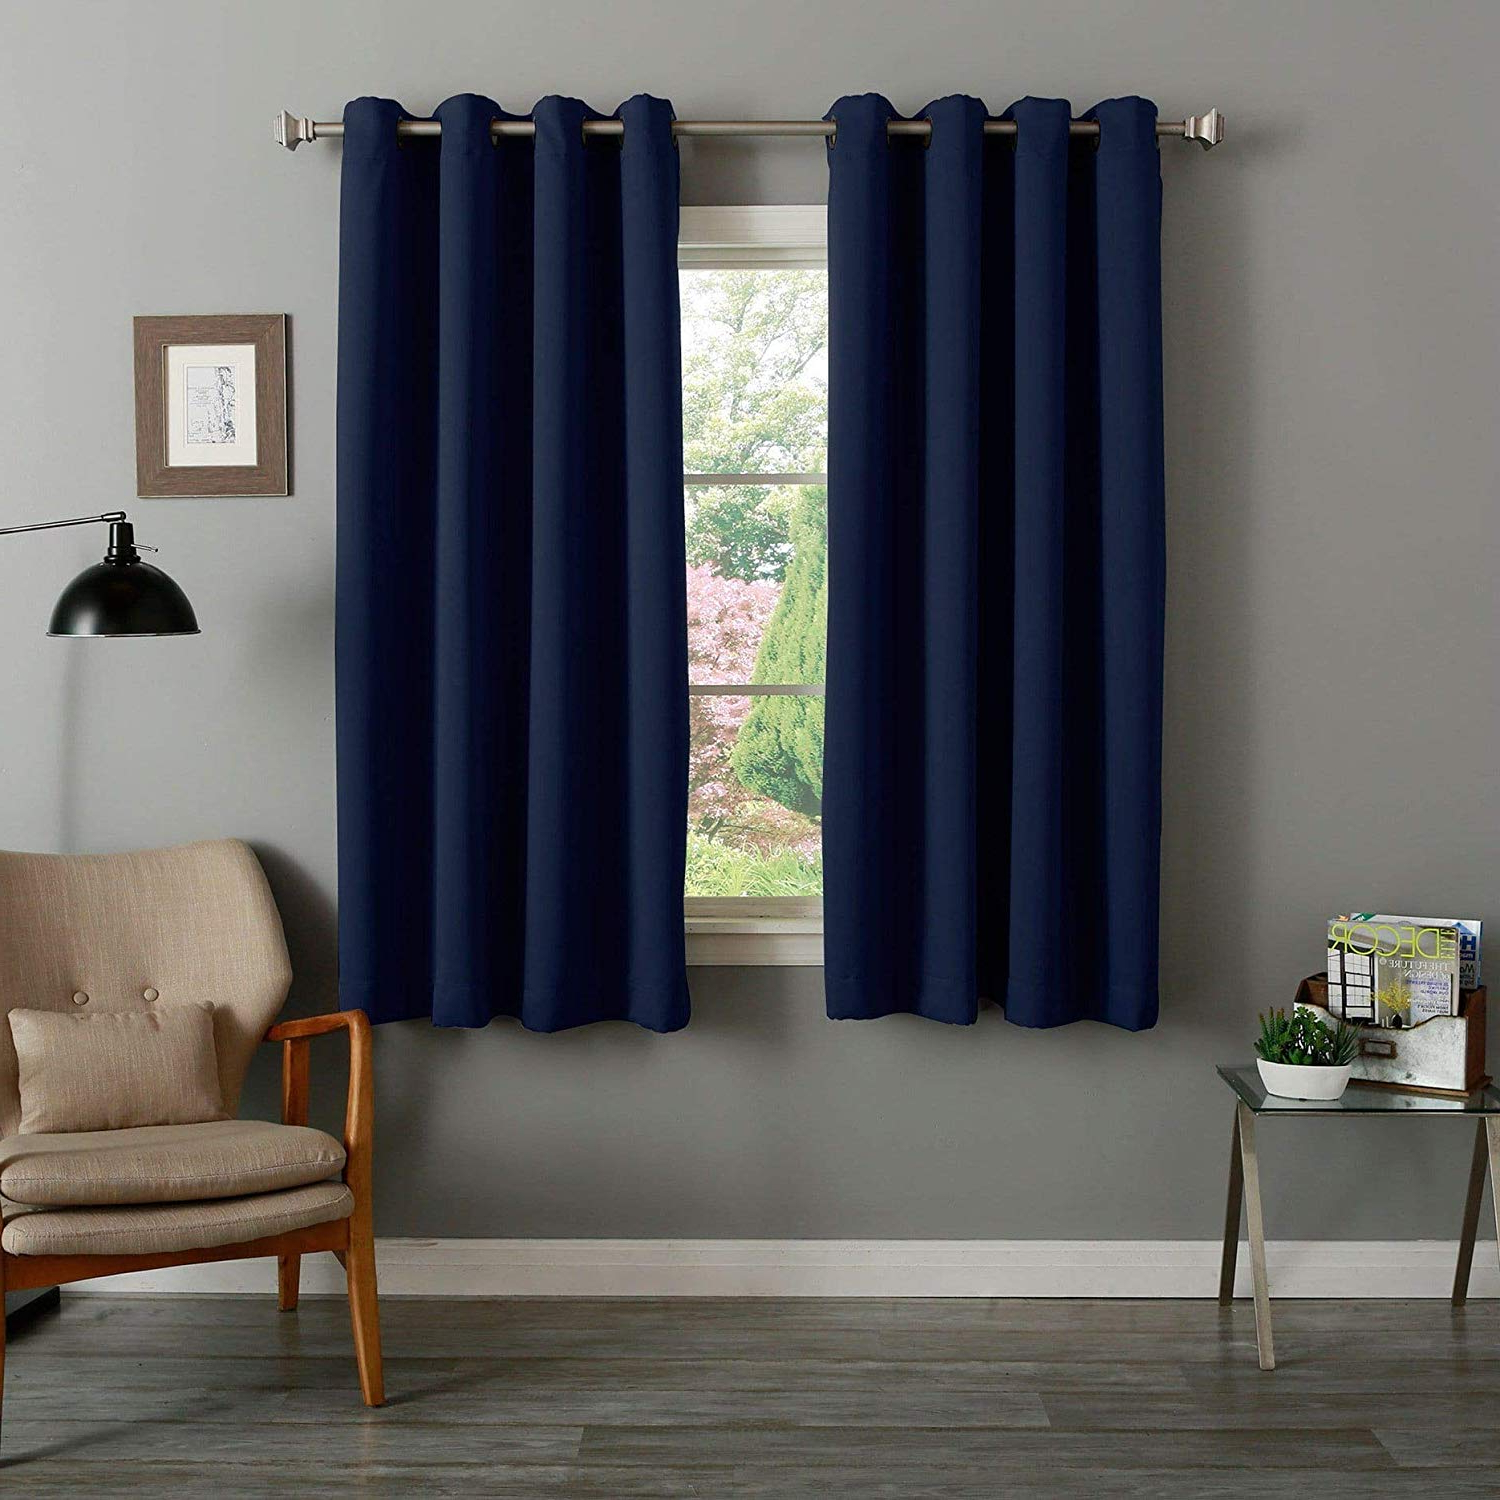 Favorite Grommet Top Thermal Insulated Blackout Curtain Panel Pairs For Amazon: 4 Piece Grommet Top Thermal Insulated Blackout (View 17 of 20)